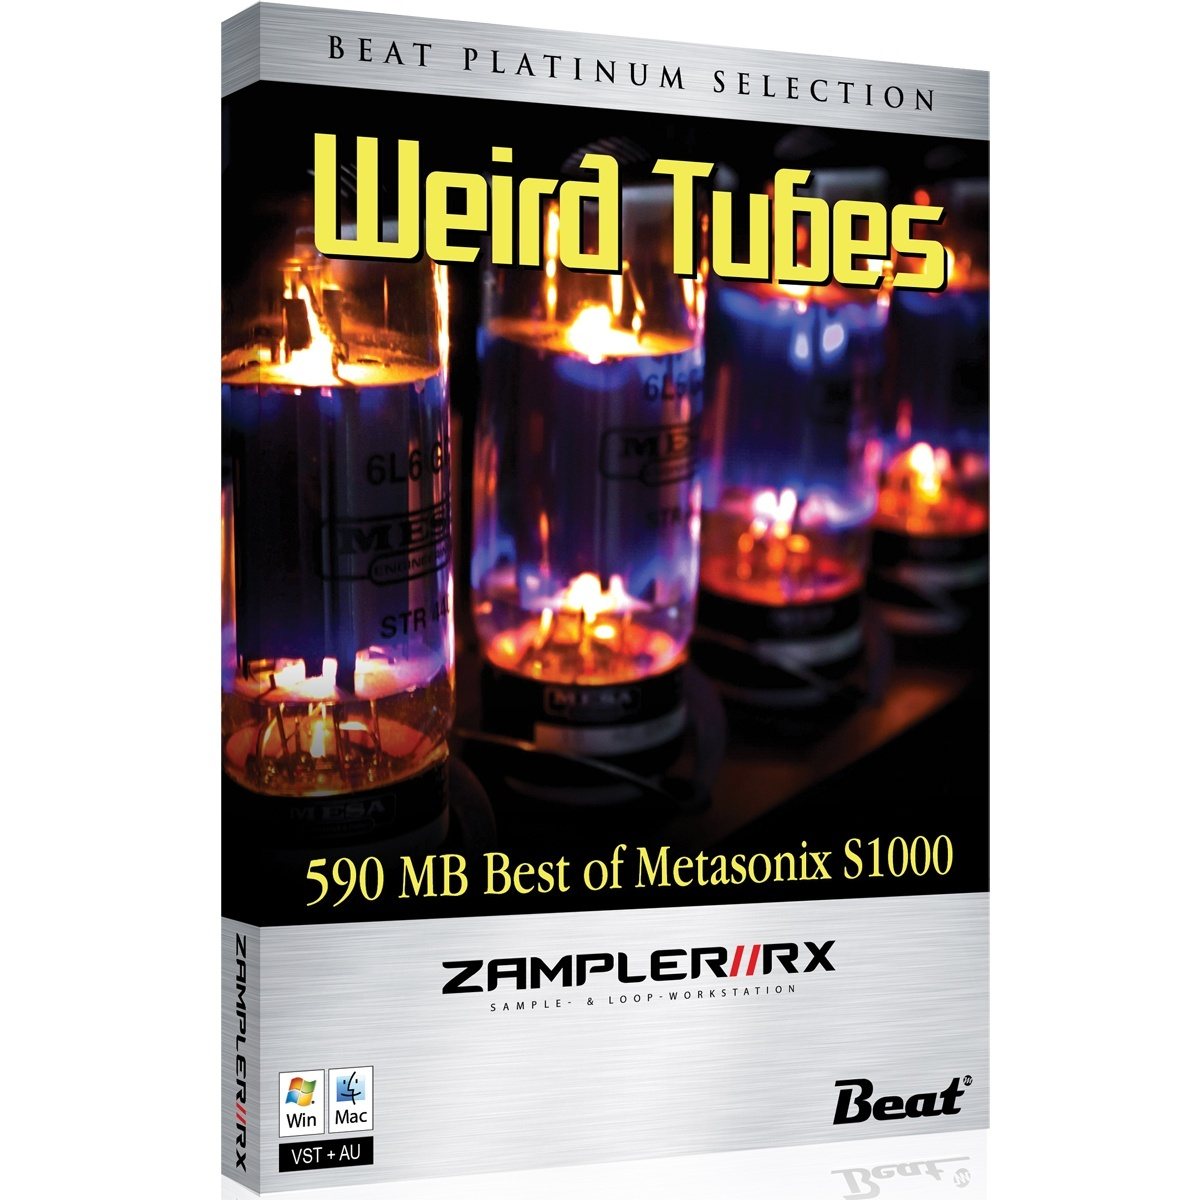 WEIRD TUBES – Metasonix S-1000 sound bank for Zampler//RX workstation (Win/OSX plugin included)